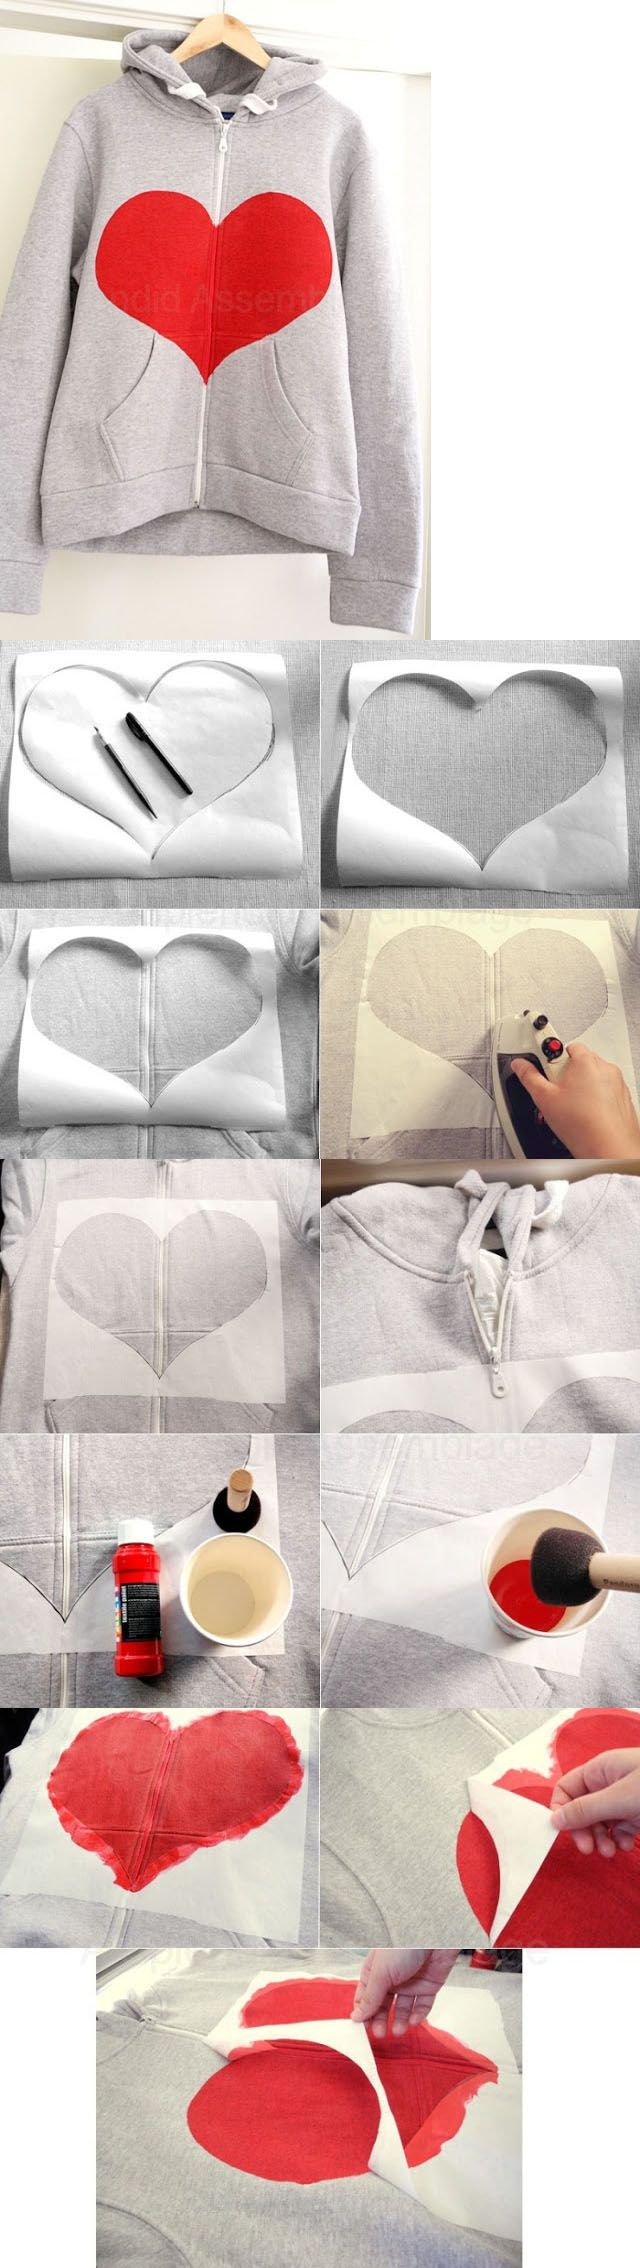 DIY Clothes | Fashionista Pieces like the idea we could do tshirts and different shapes